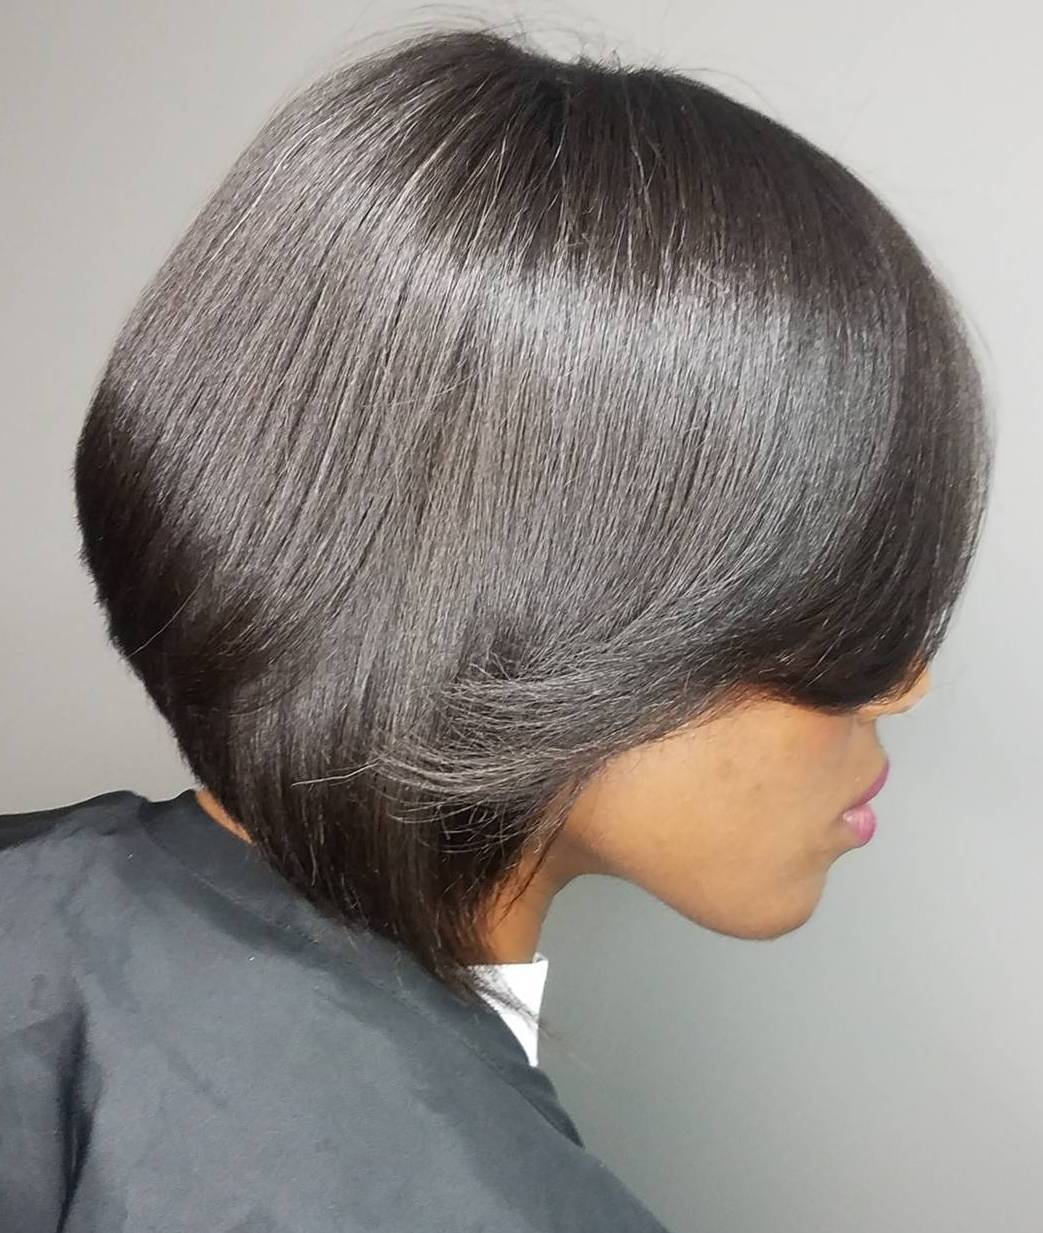 Polished Shiny Black Bob